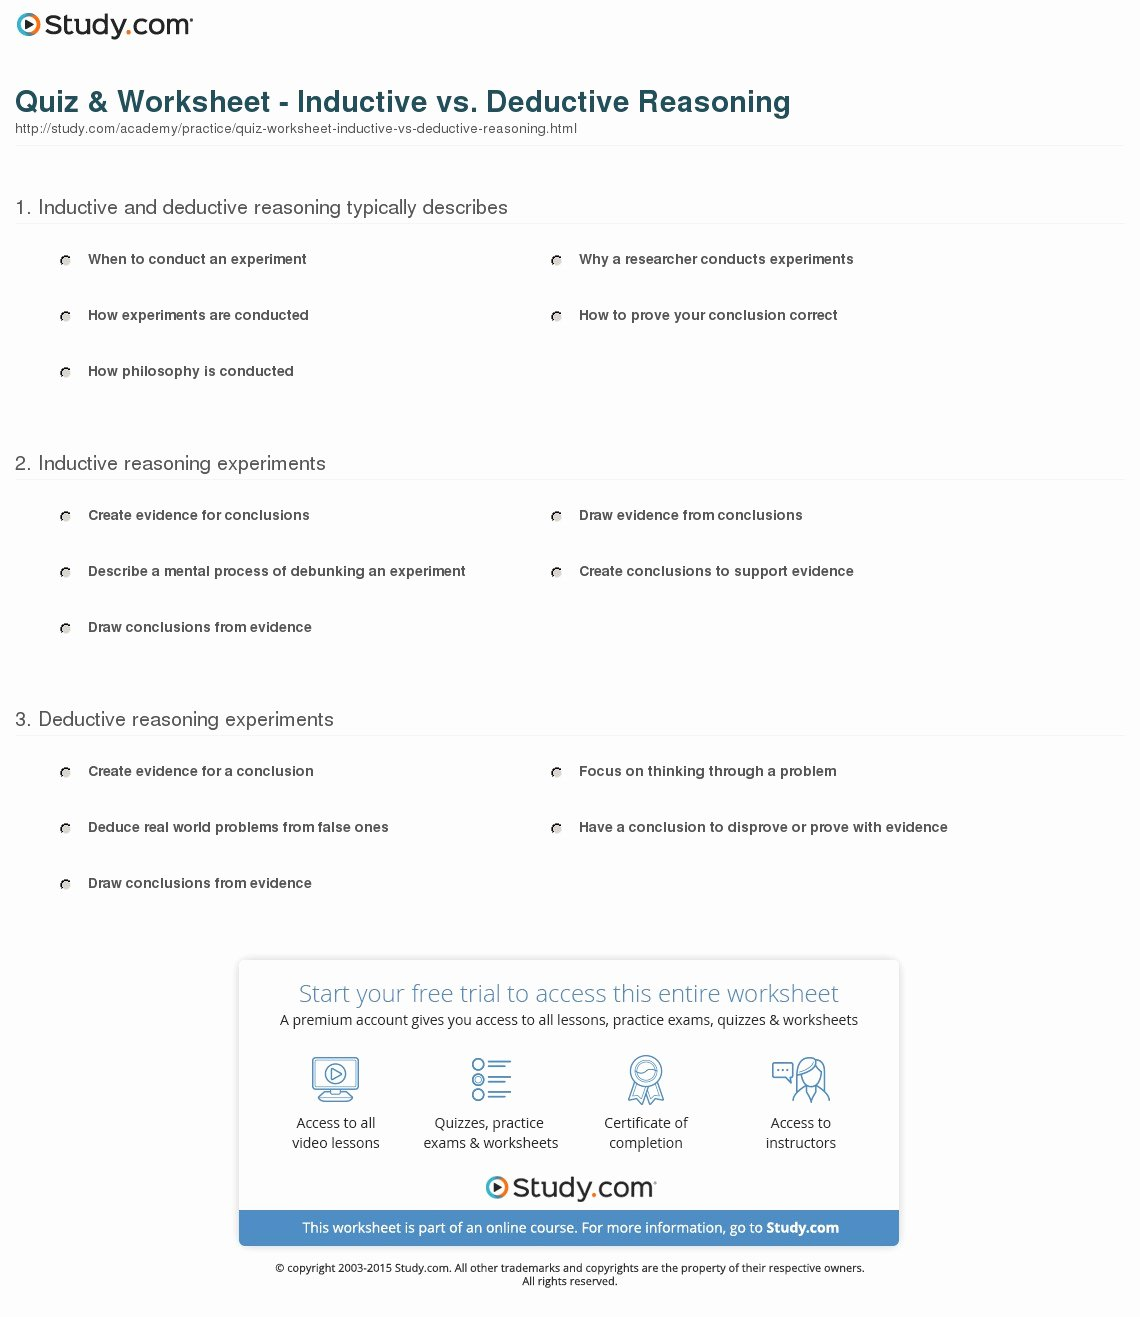 Inductive and Deductive Reasoning Worksheet Luxury Quiz & Worksheet Inductive Vs Deductive Reasoning